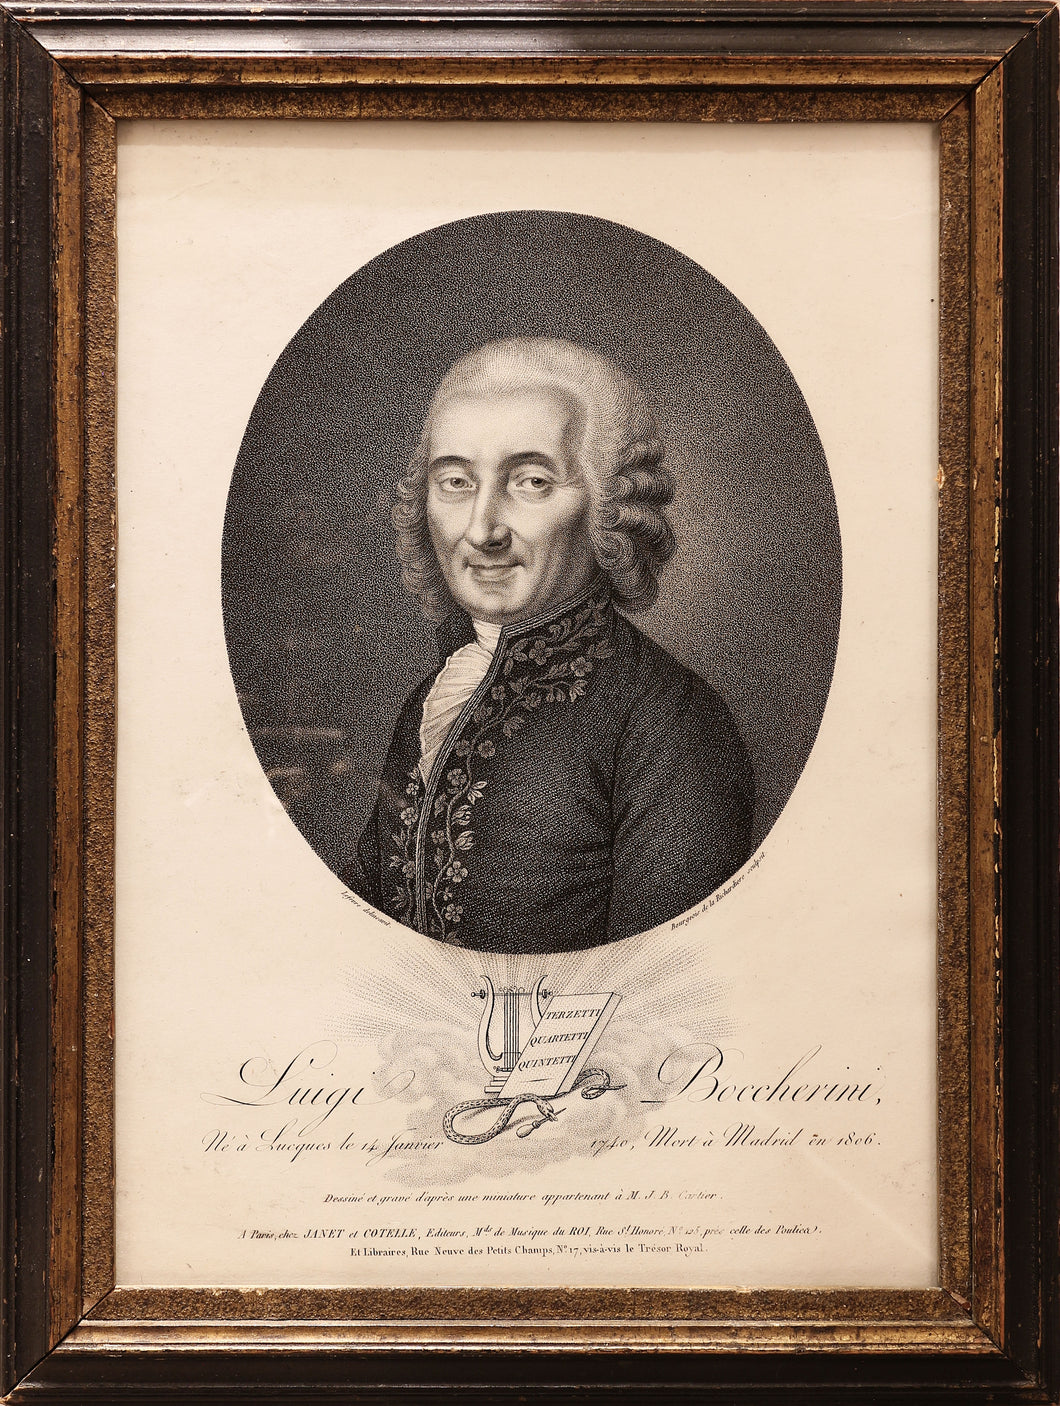 'Luigi Boccherini' a Fine Stipple Engraving of the Composer circa 1806